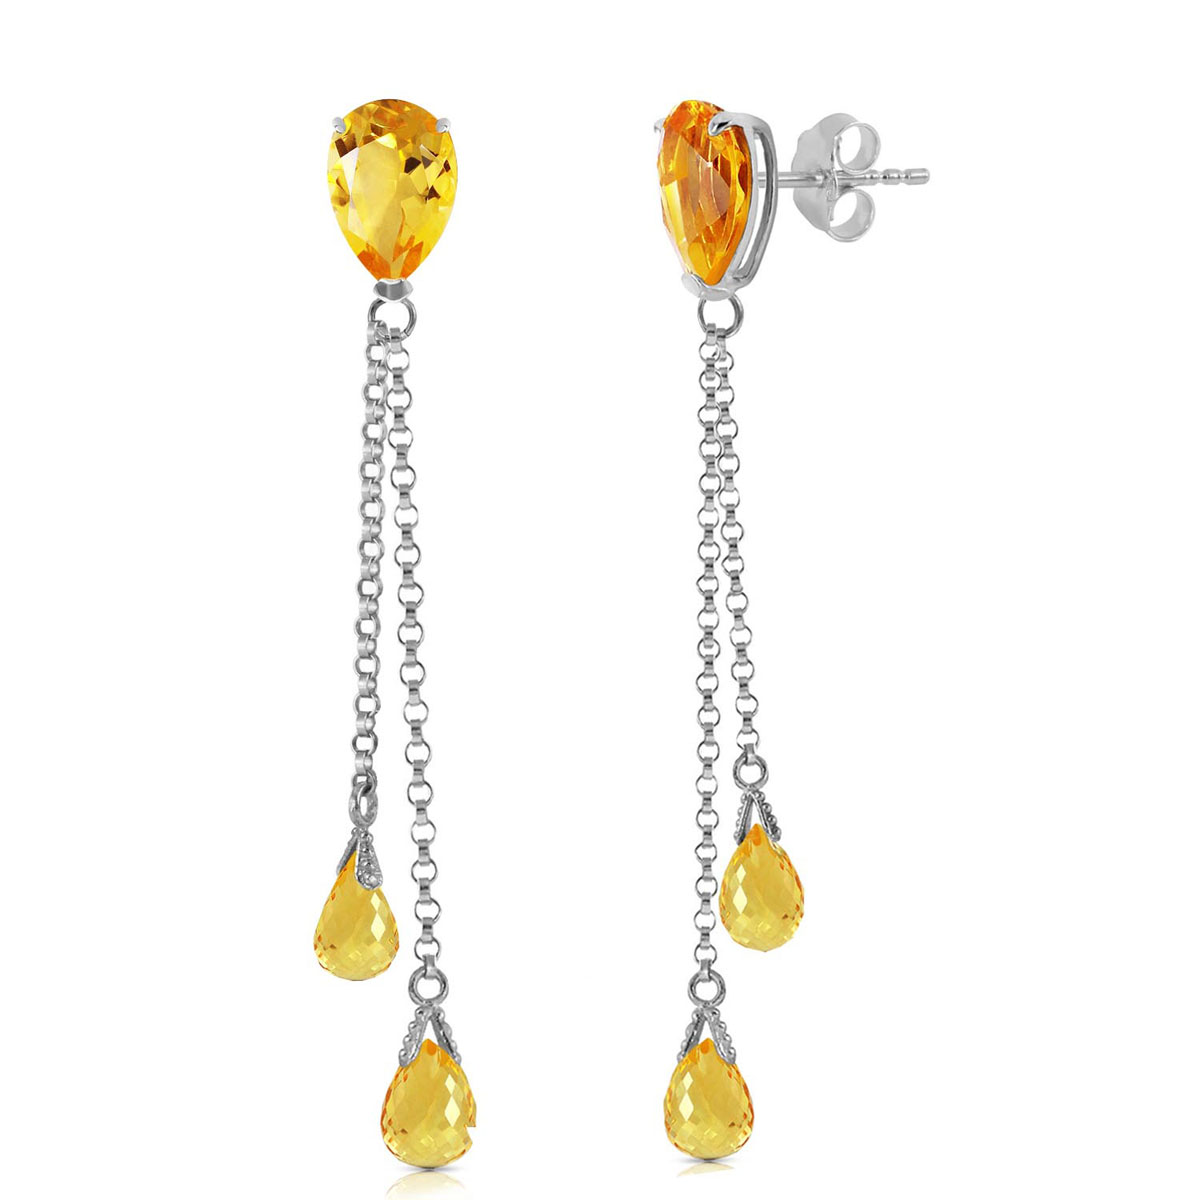 Citrine Droplet Earrings 7.5 ctw in 9ct White Gold